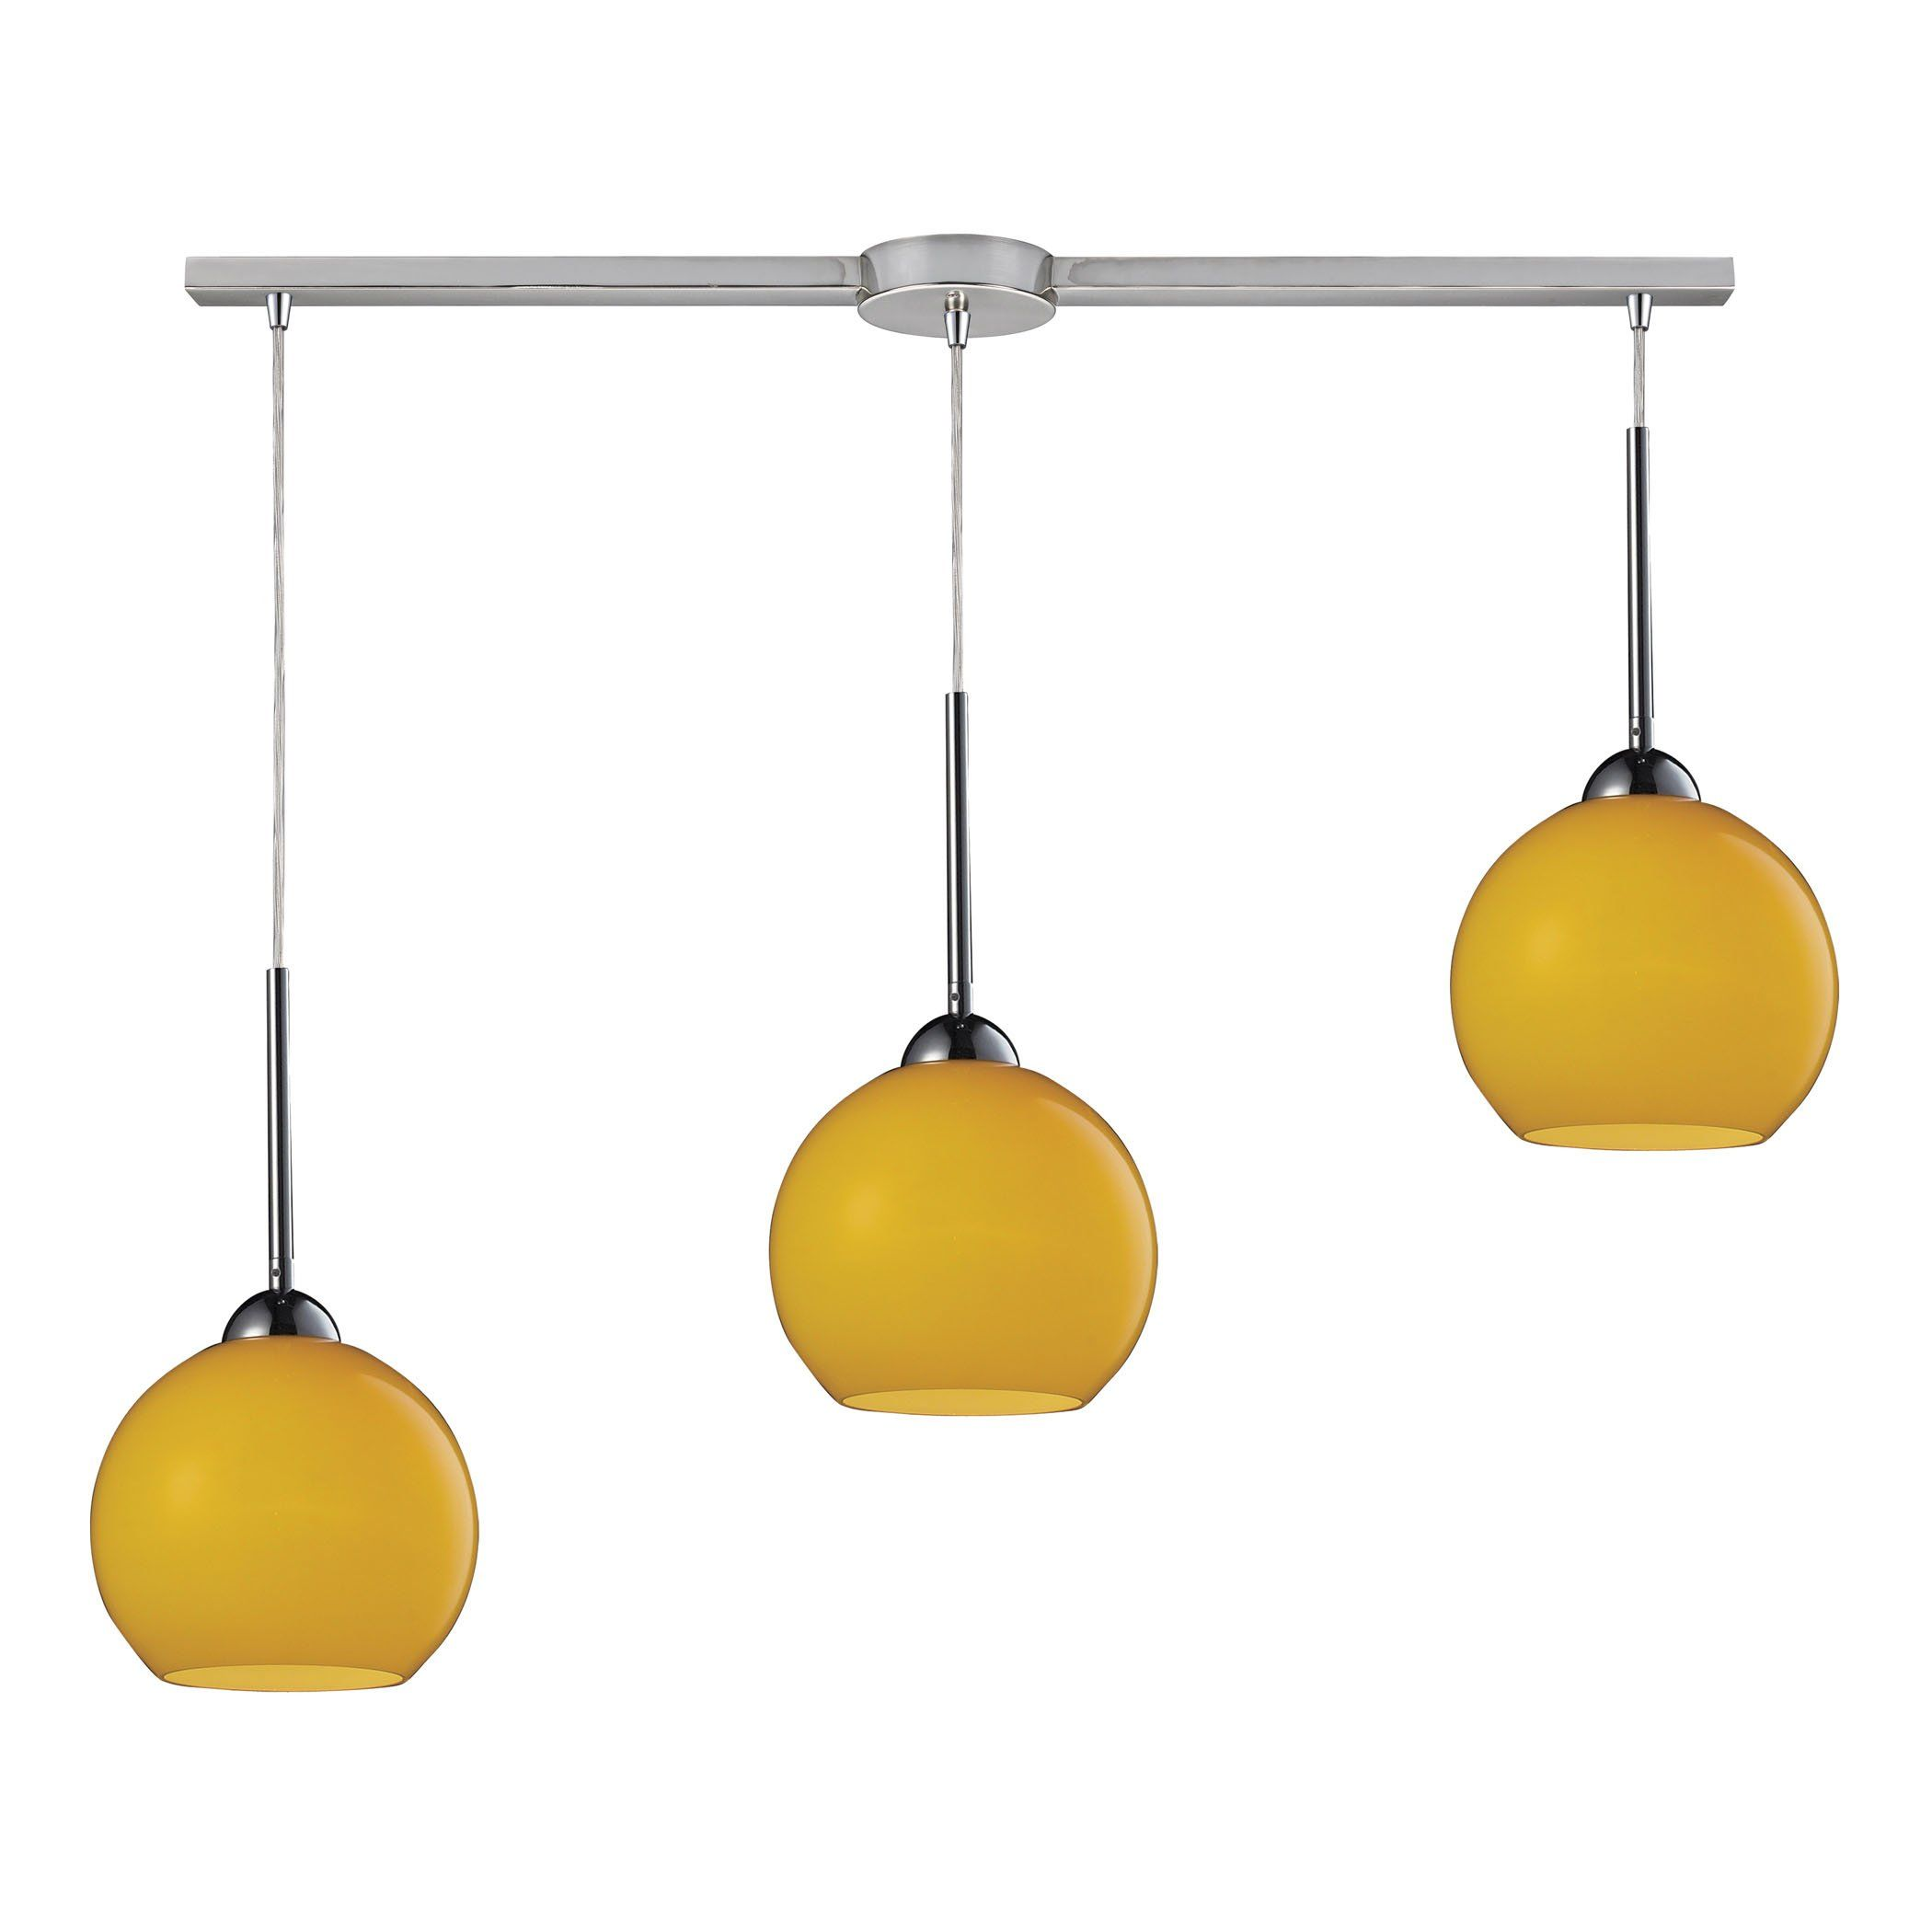 A Polished Chrome Cassandra 3 Light Pendant Made Of Metal And Lemon Glass Collection Style Class Indoor Lighting Finish Materials